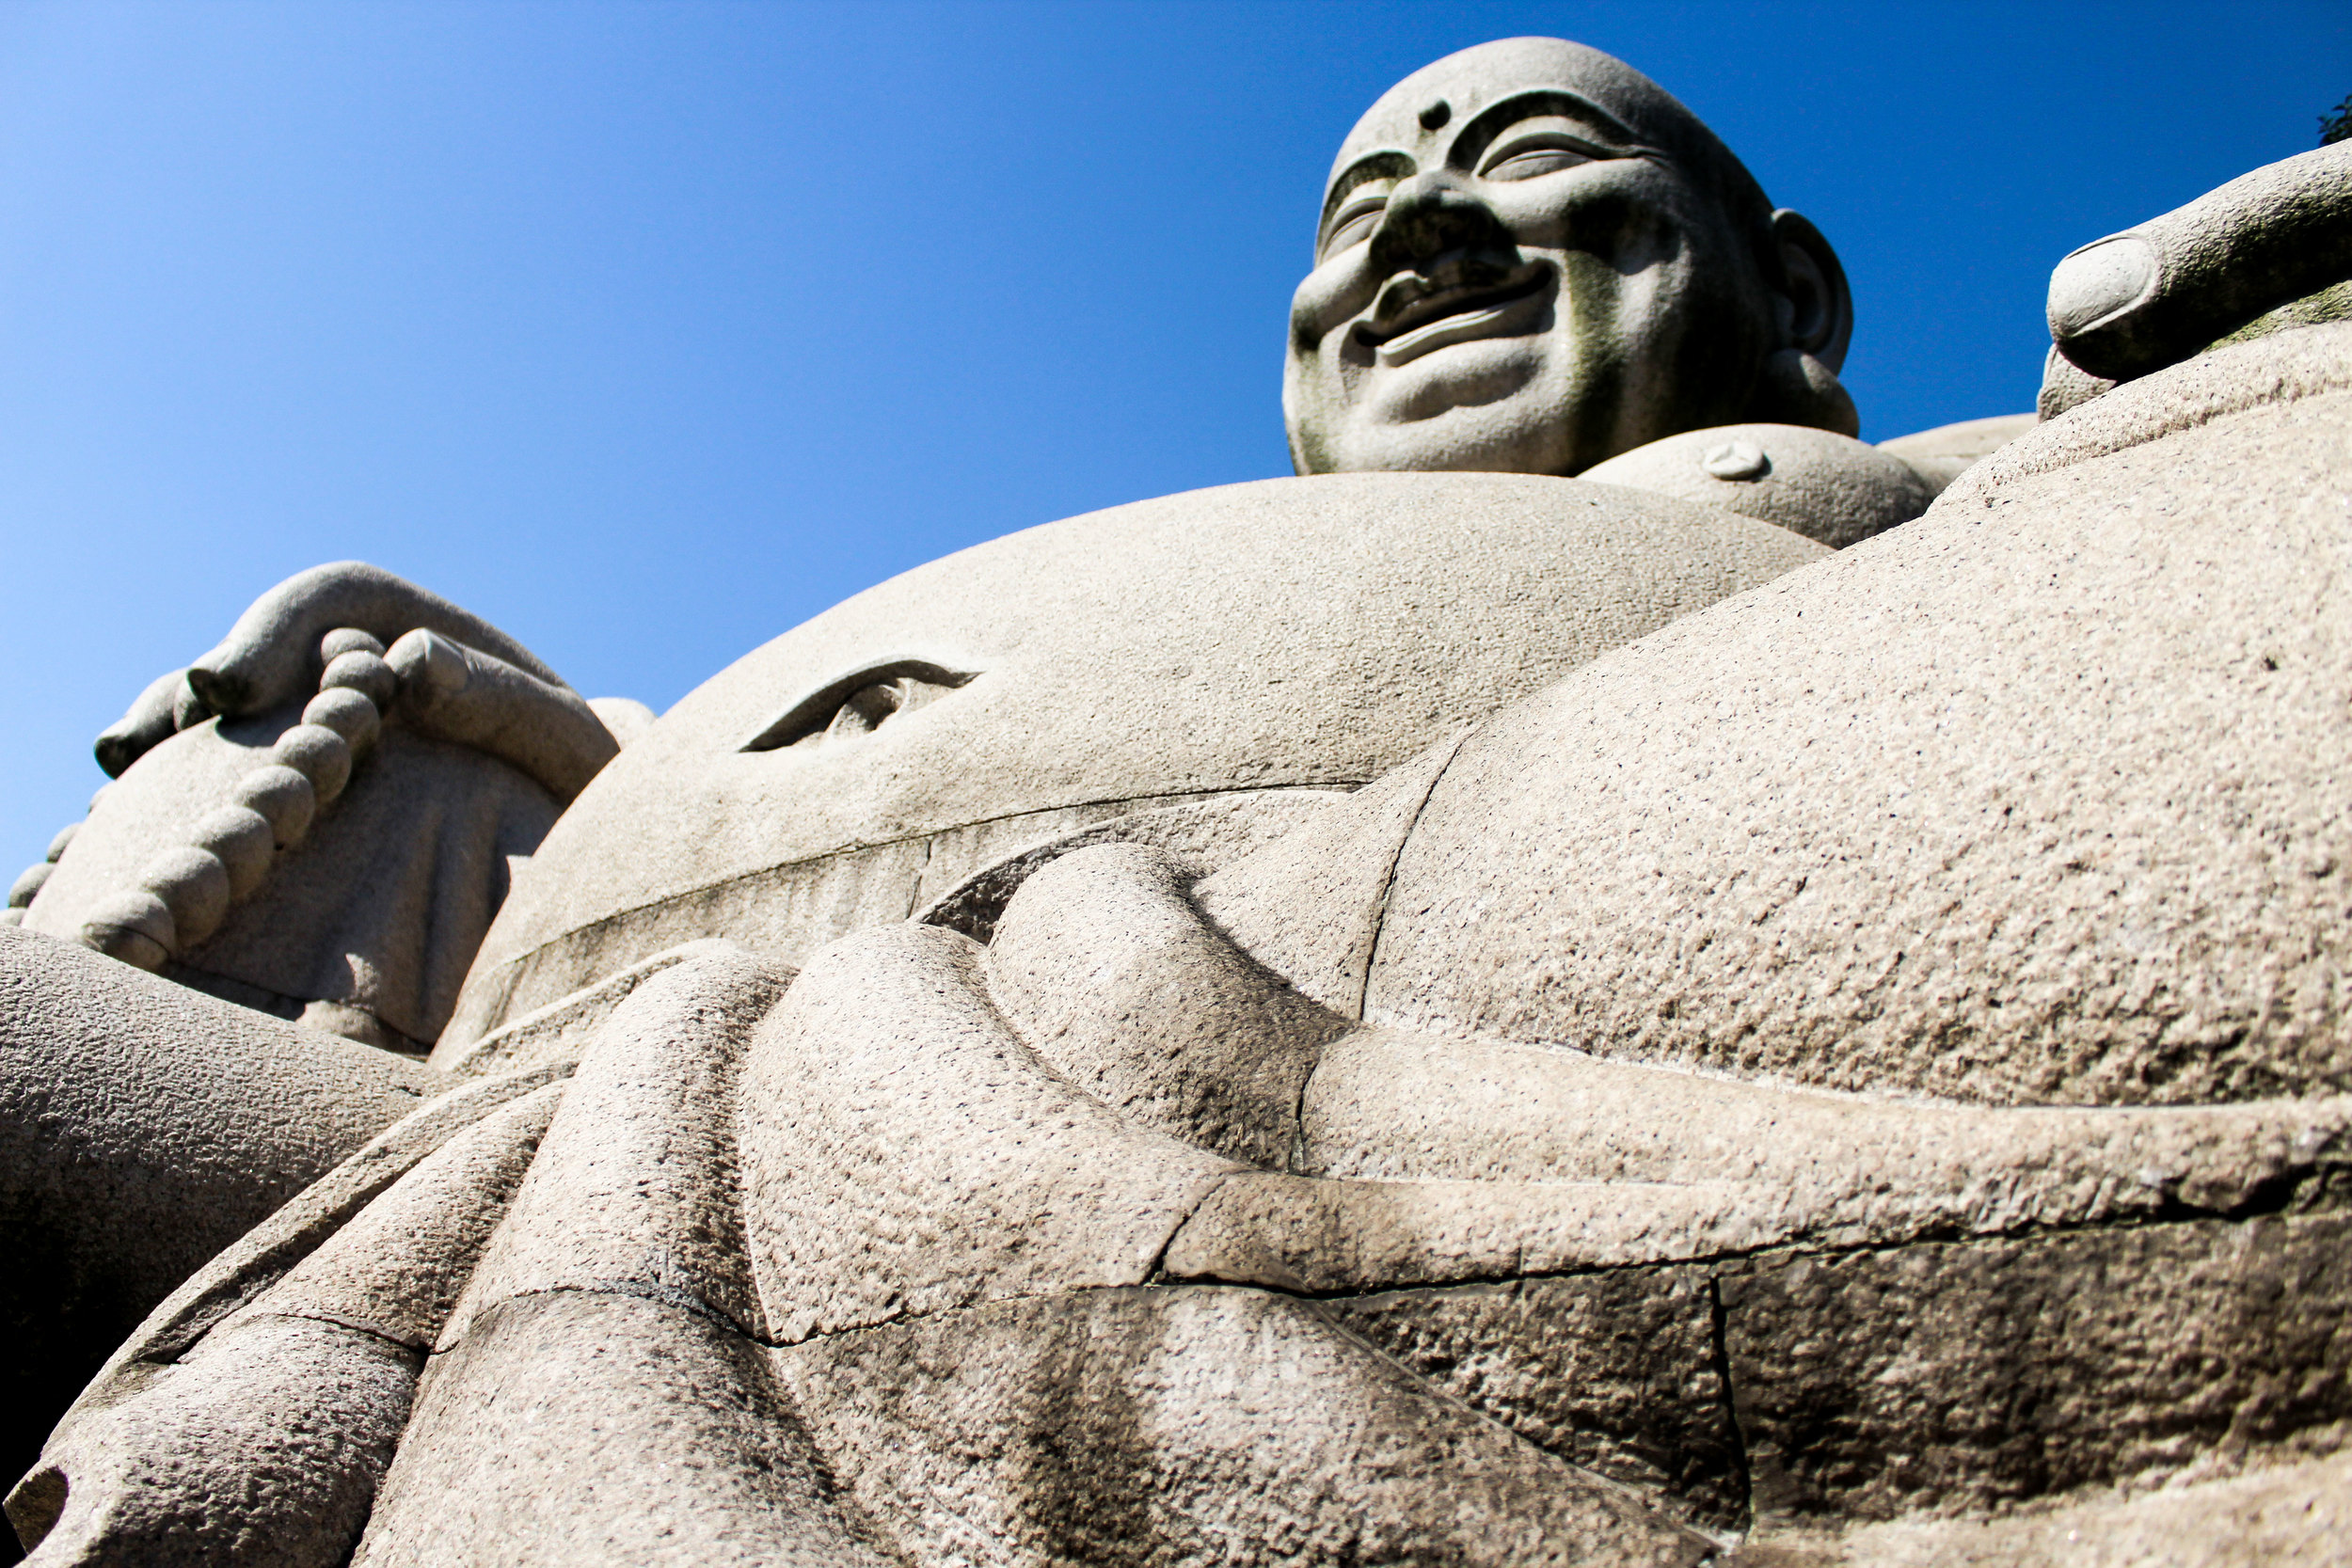 This huge Buddha in Nanjing was a big deal